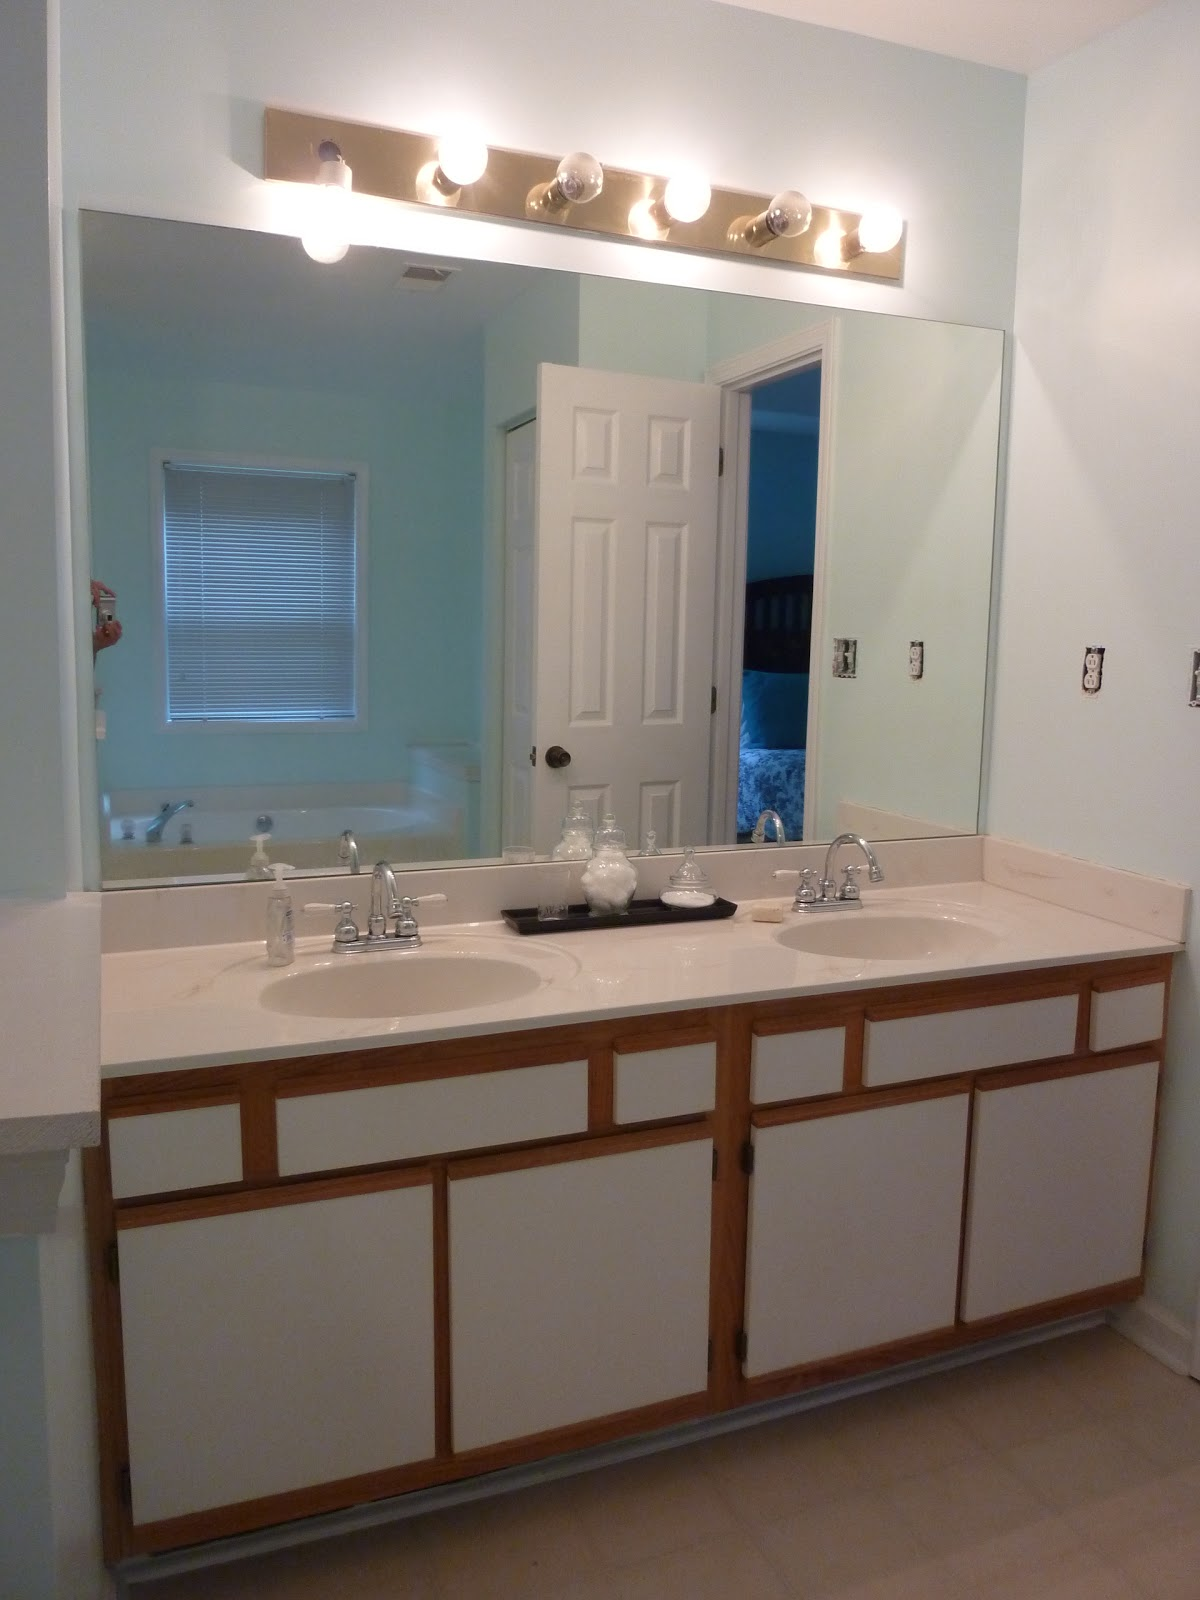 Make and Do: Newly Painted Bathroom Cabinet